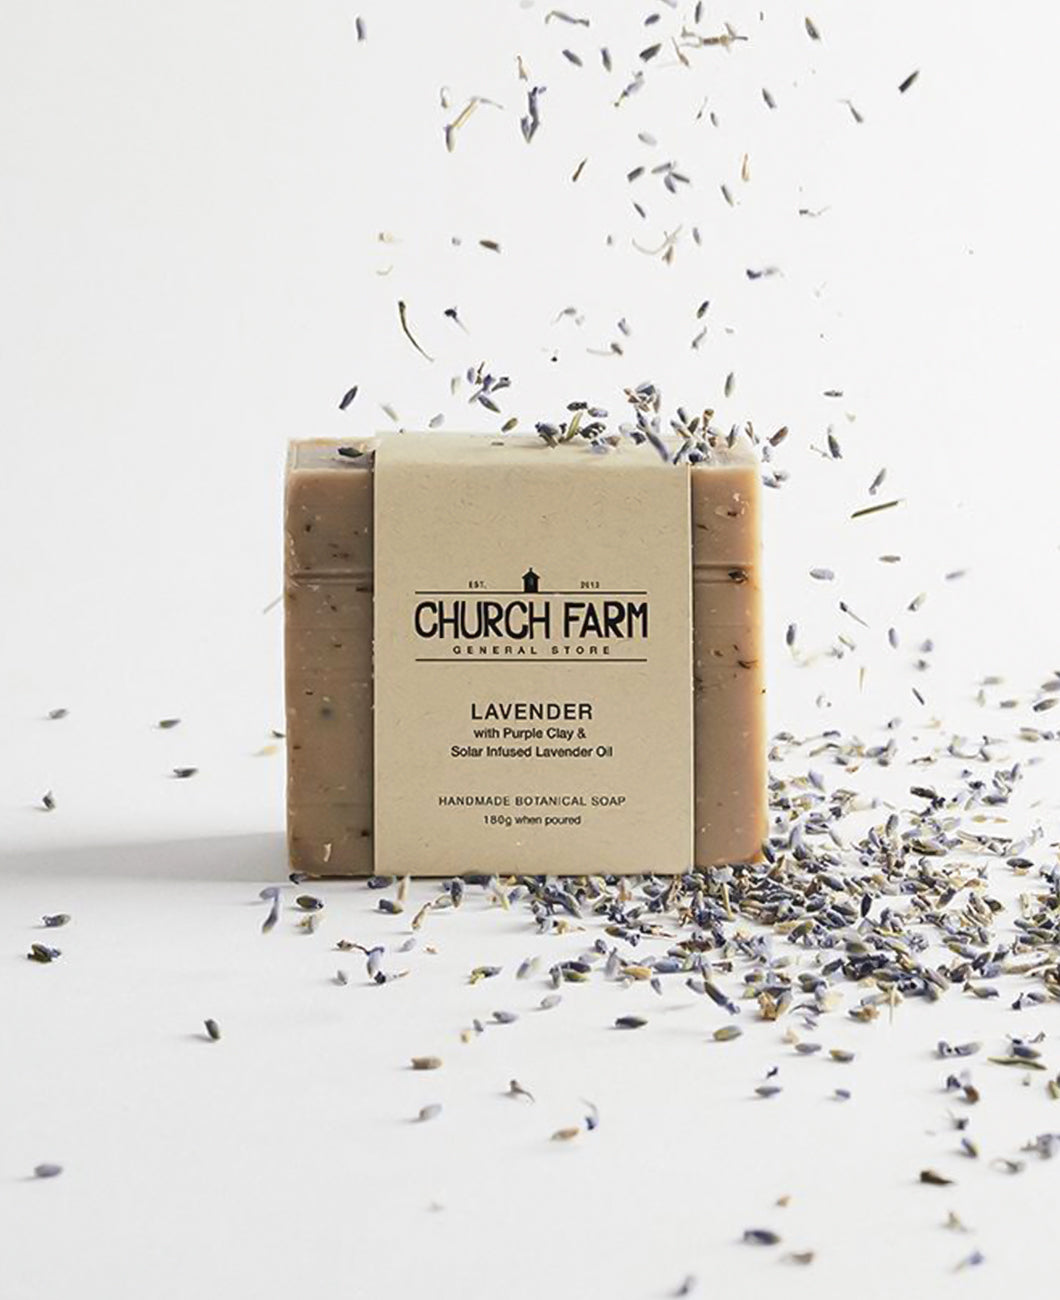 Church Farm Lavender with Purple Clay & Lavender Oil